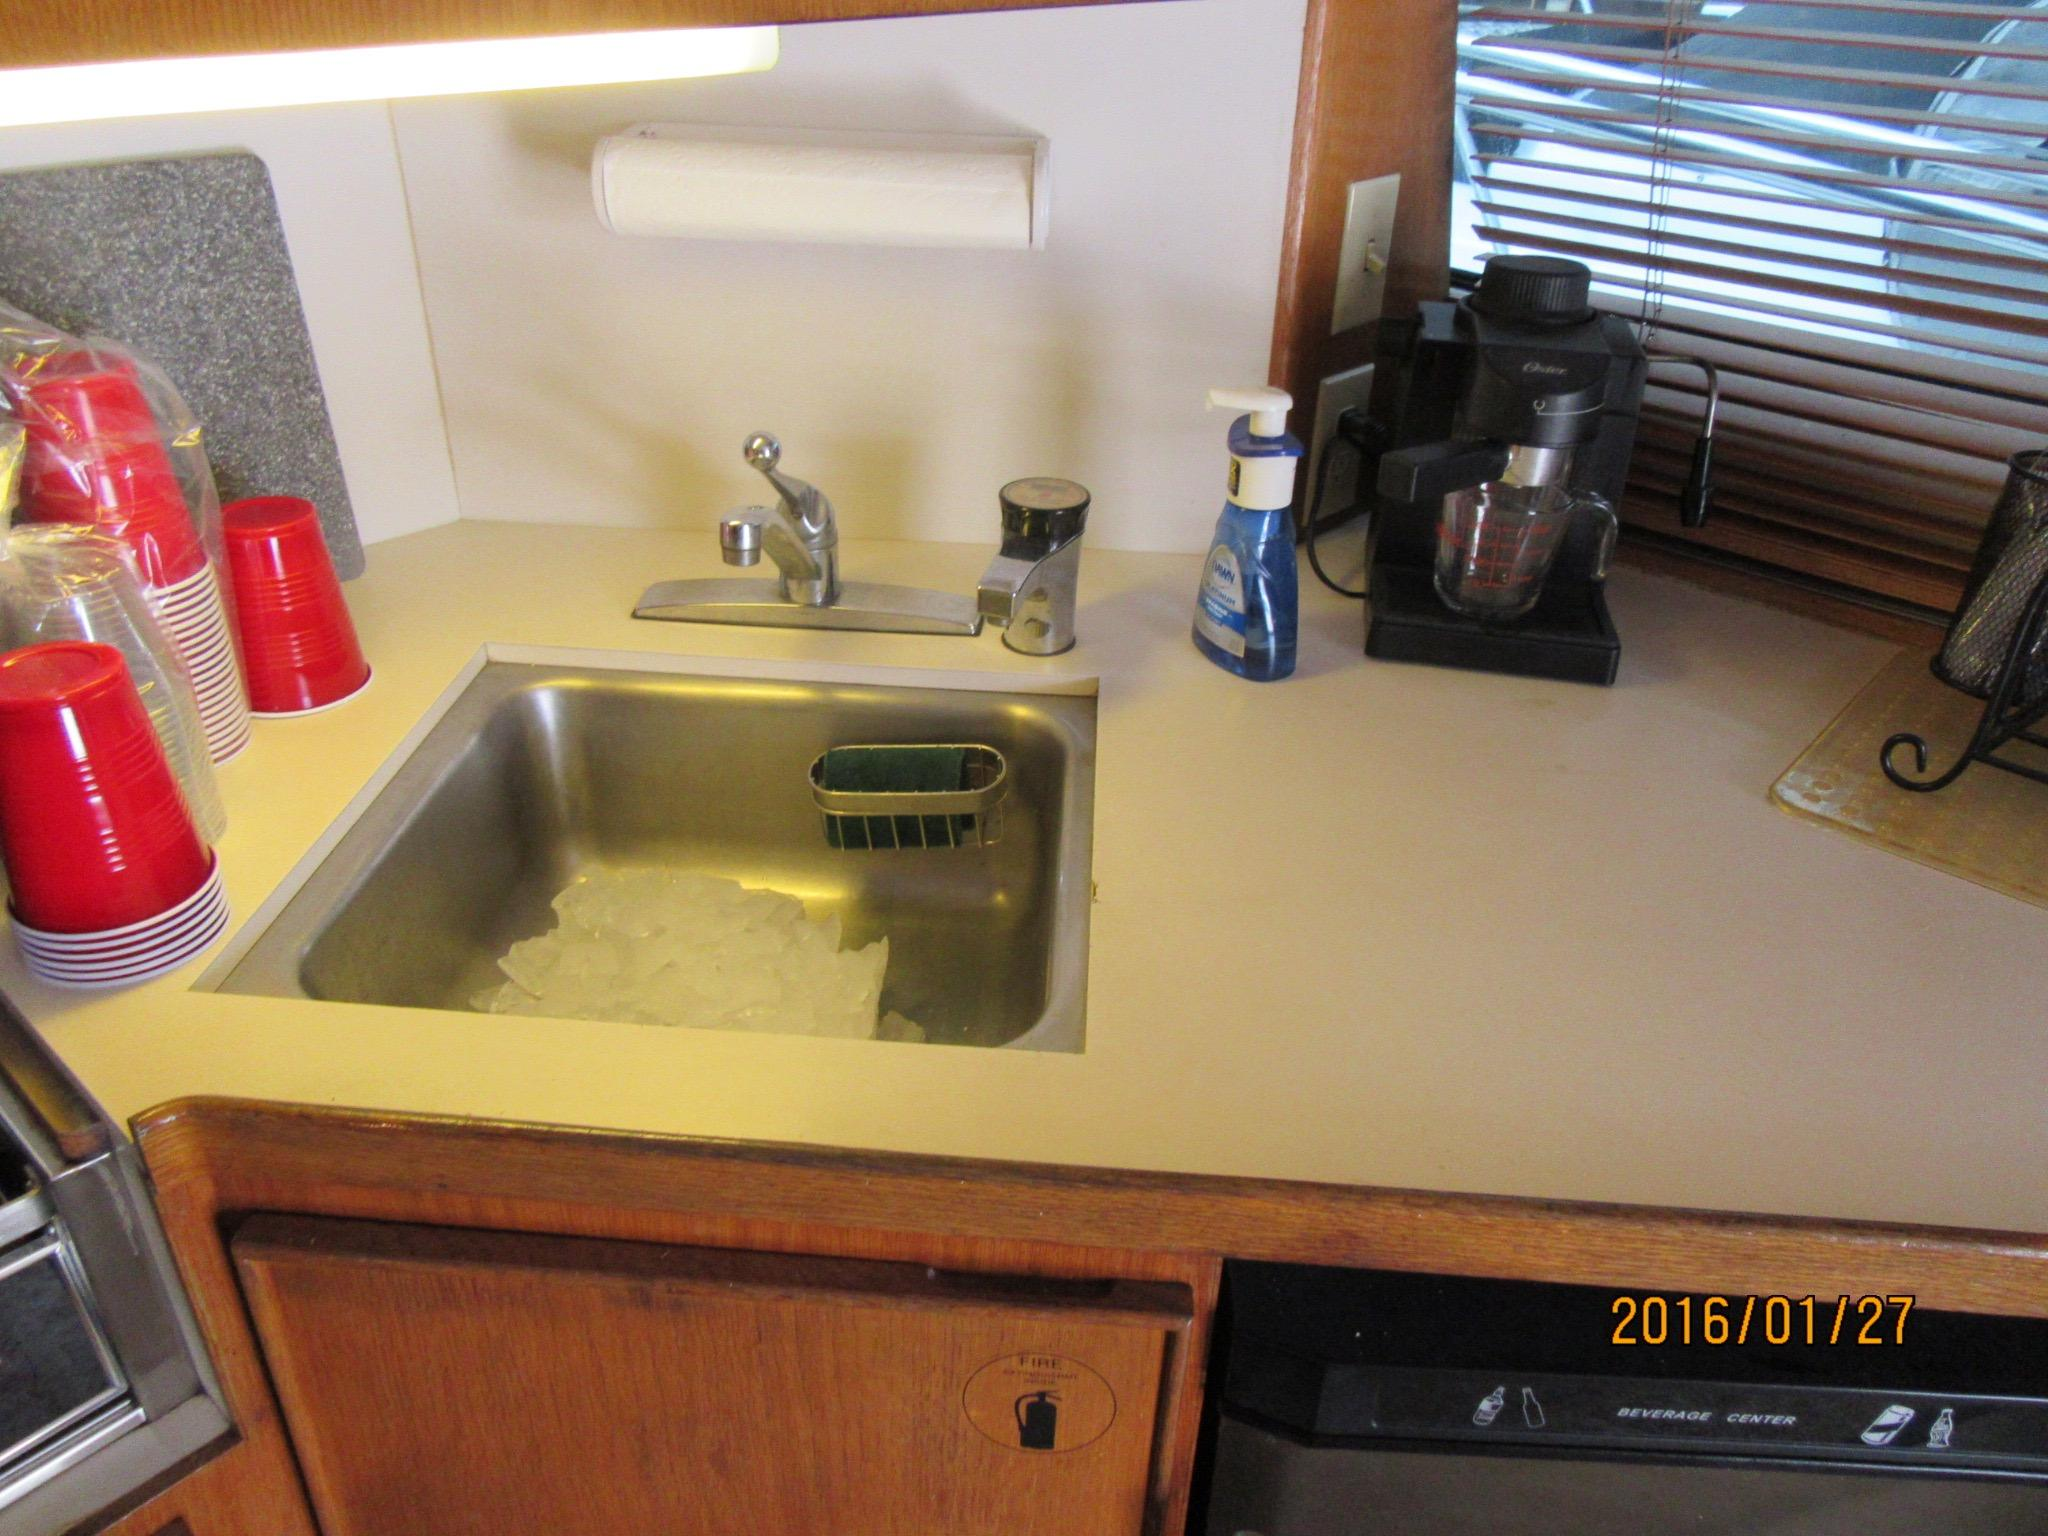 GALLEY STAINLESS STEEL SINK